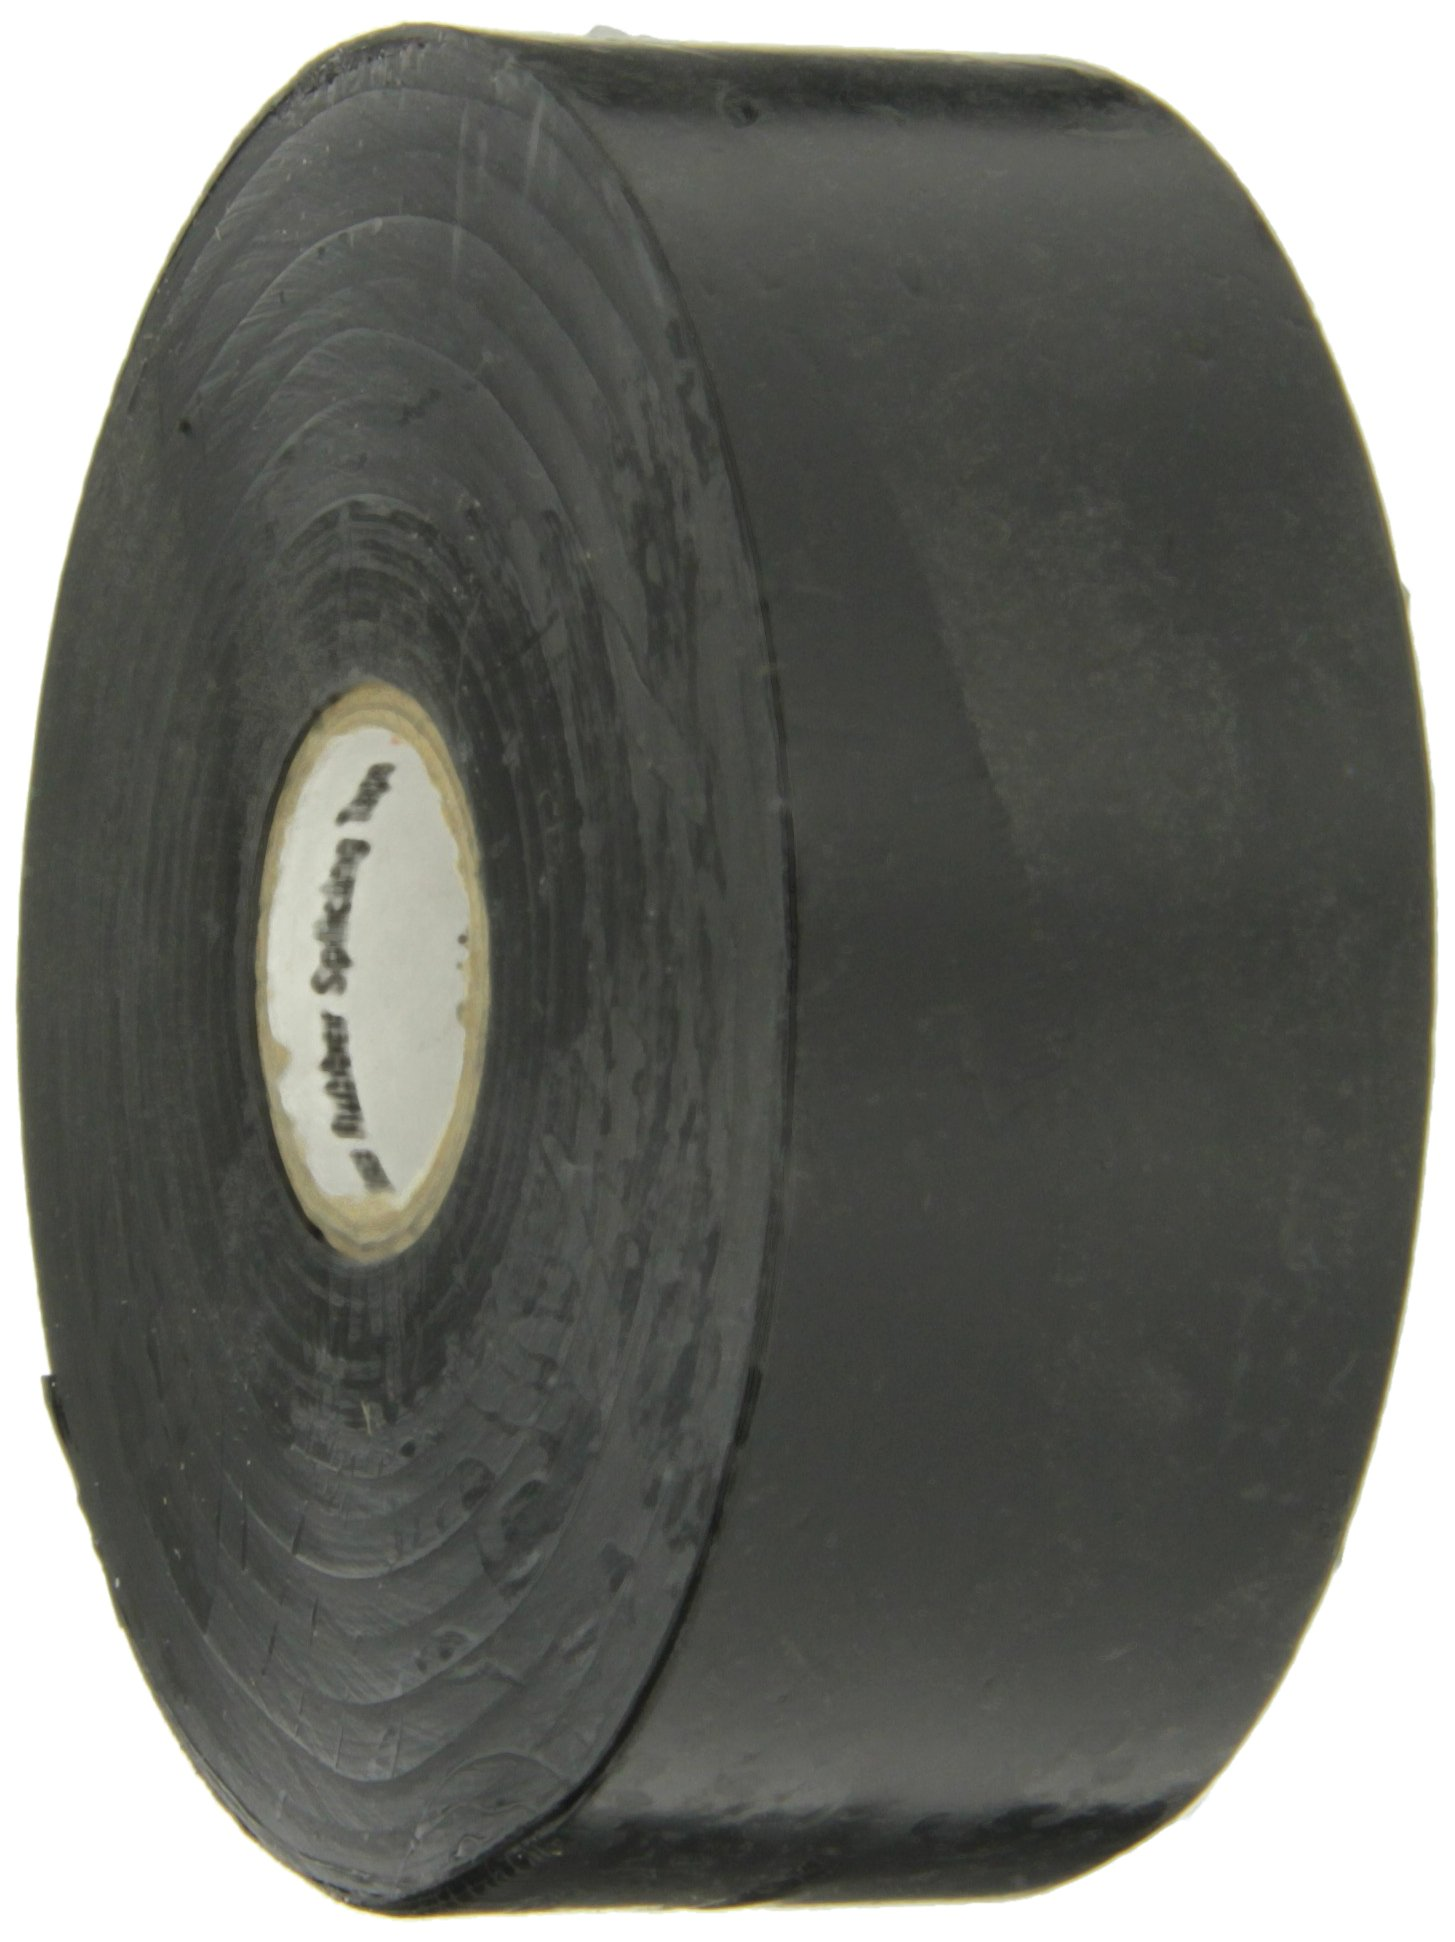 Scotch Linerless Rubber Splicing Tape 130C, 1 1/2 in x 30 ft